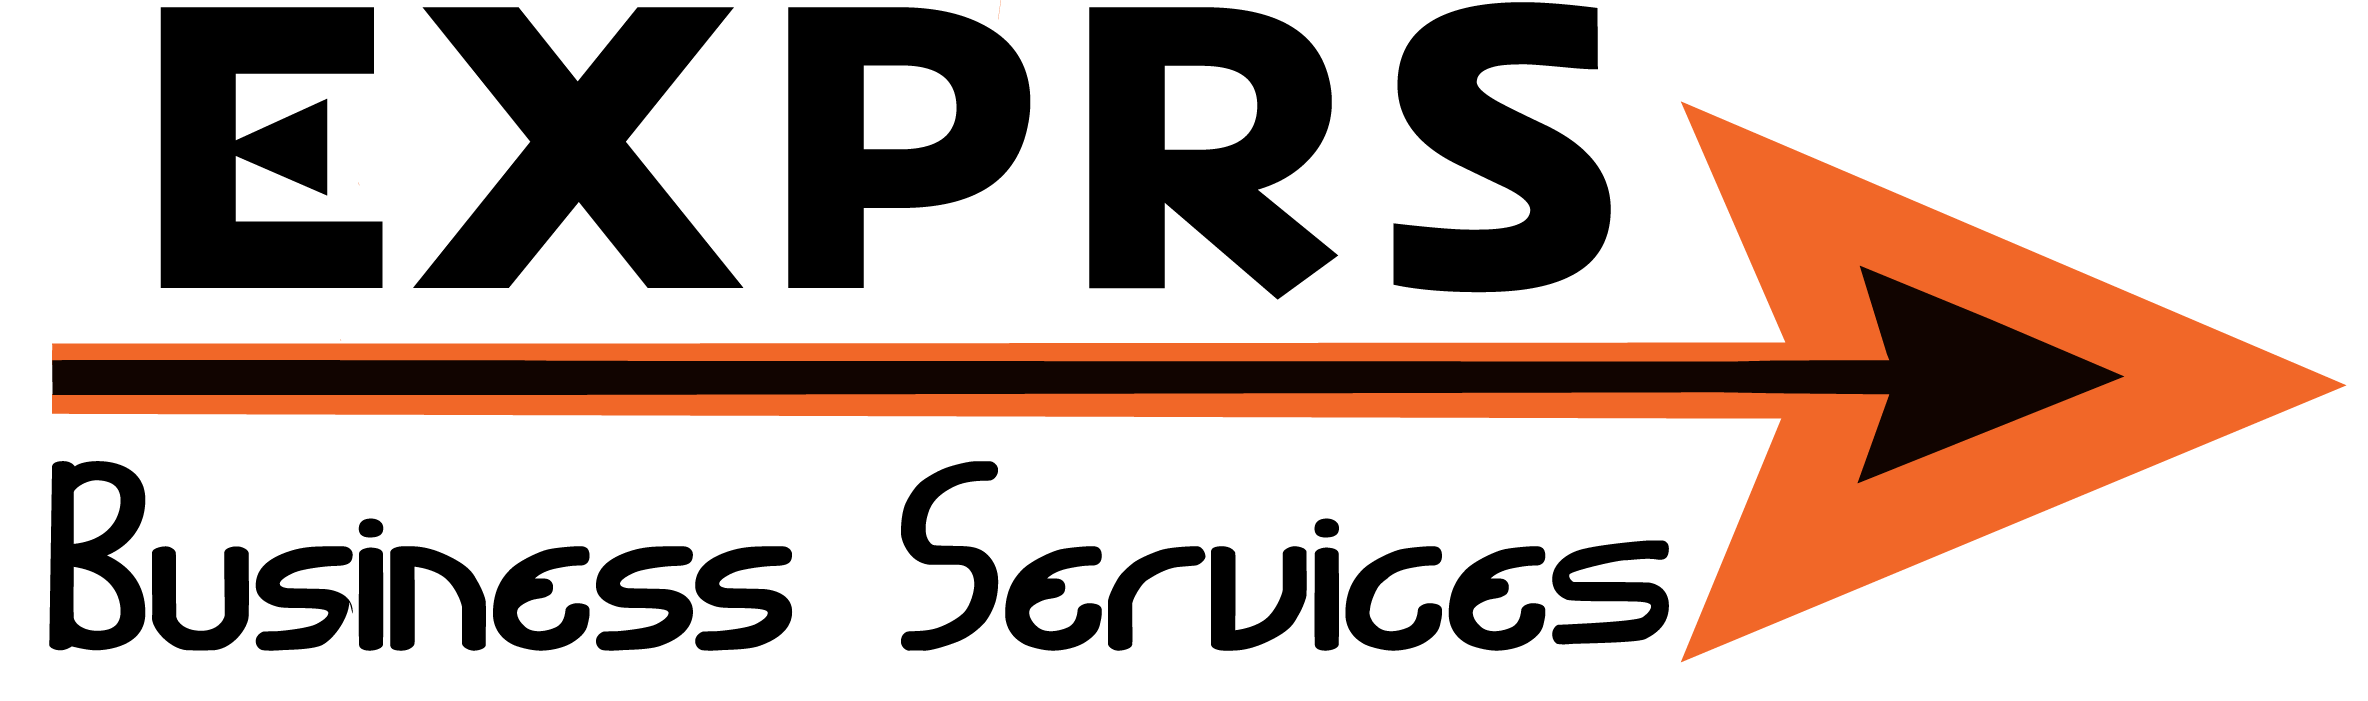 eXPRS Business Services Mobile Logo